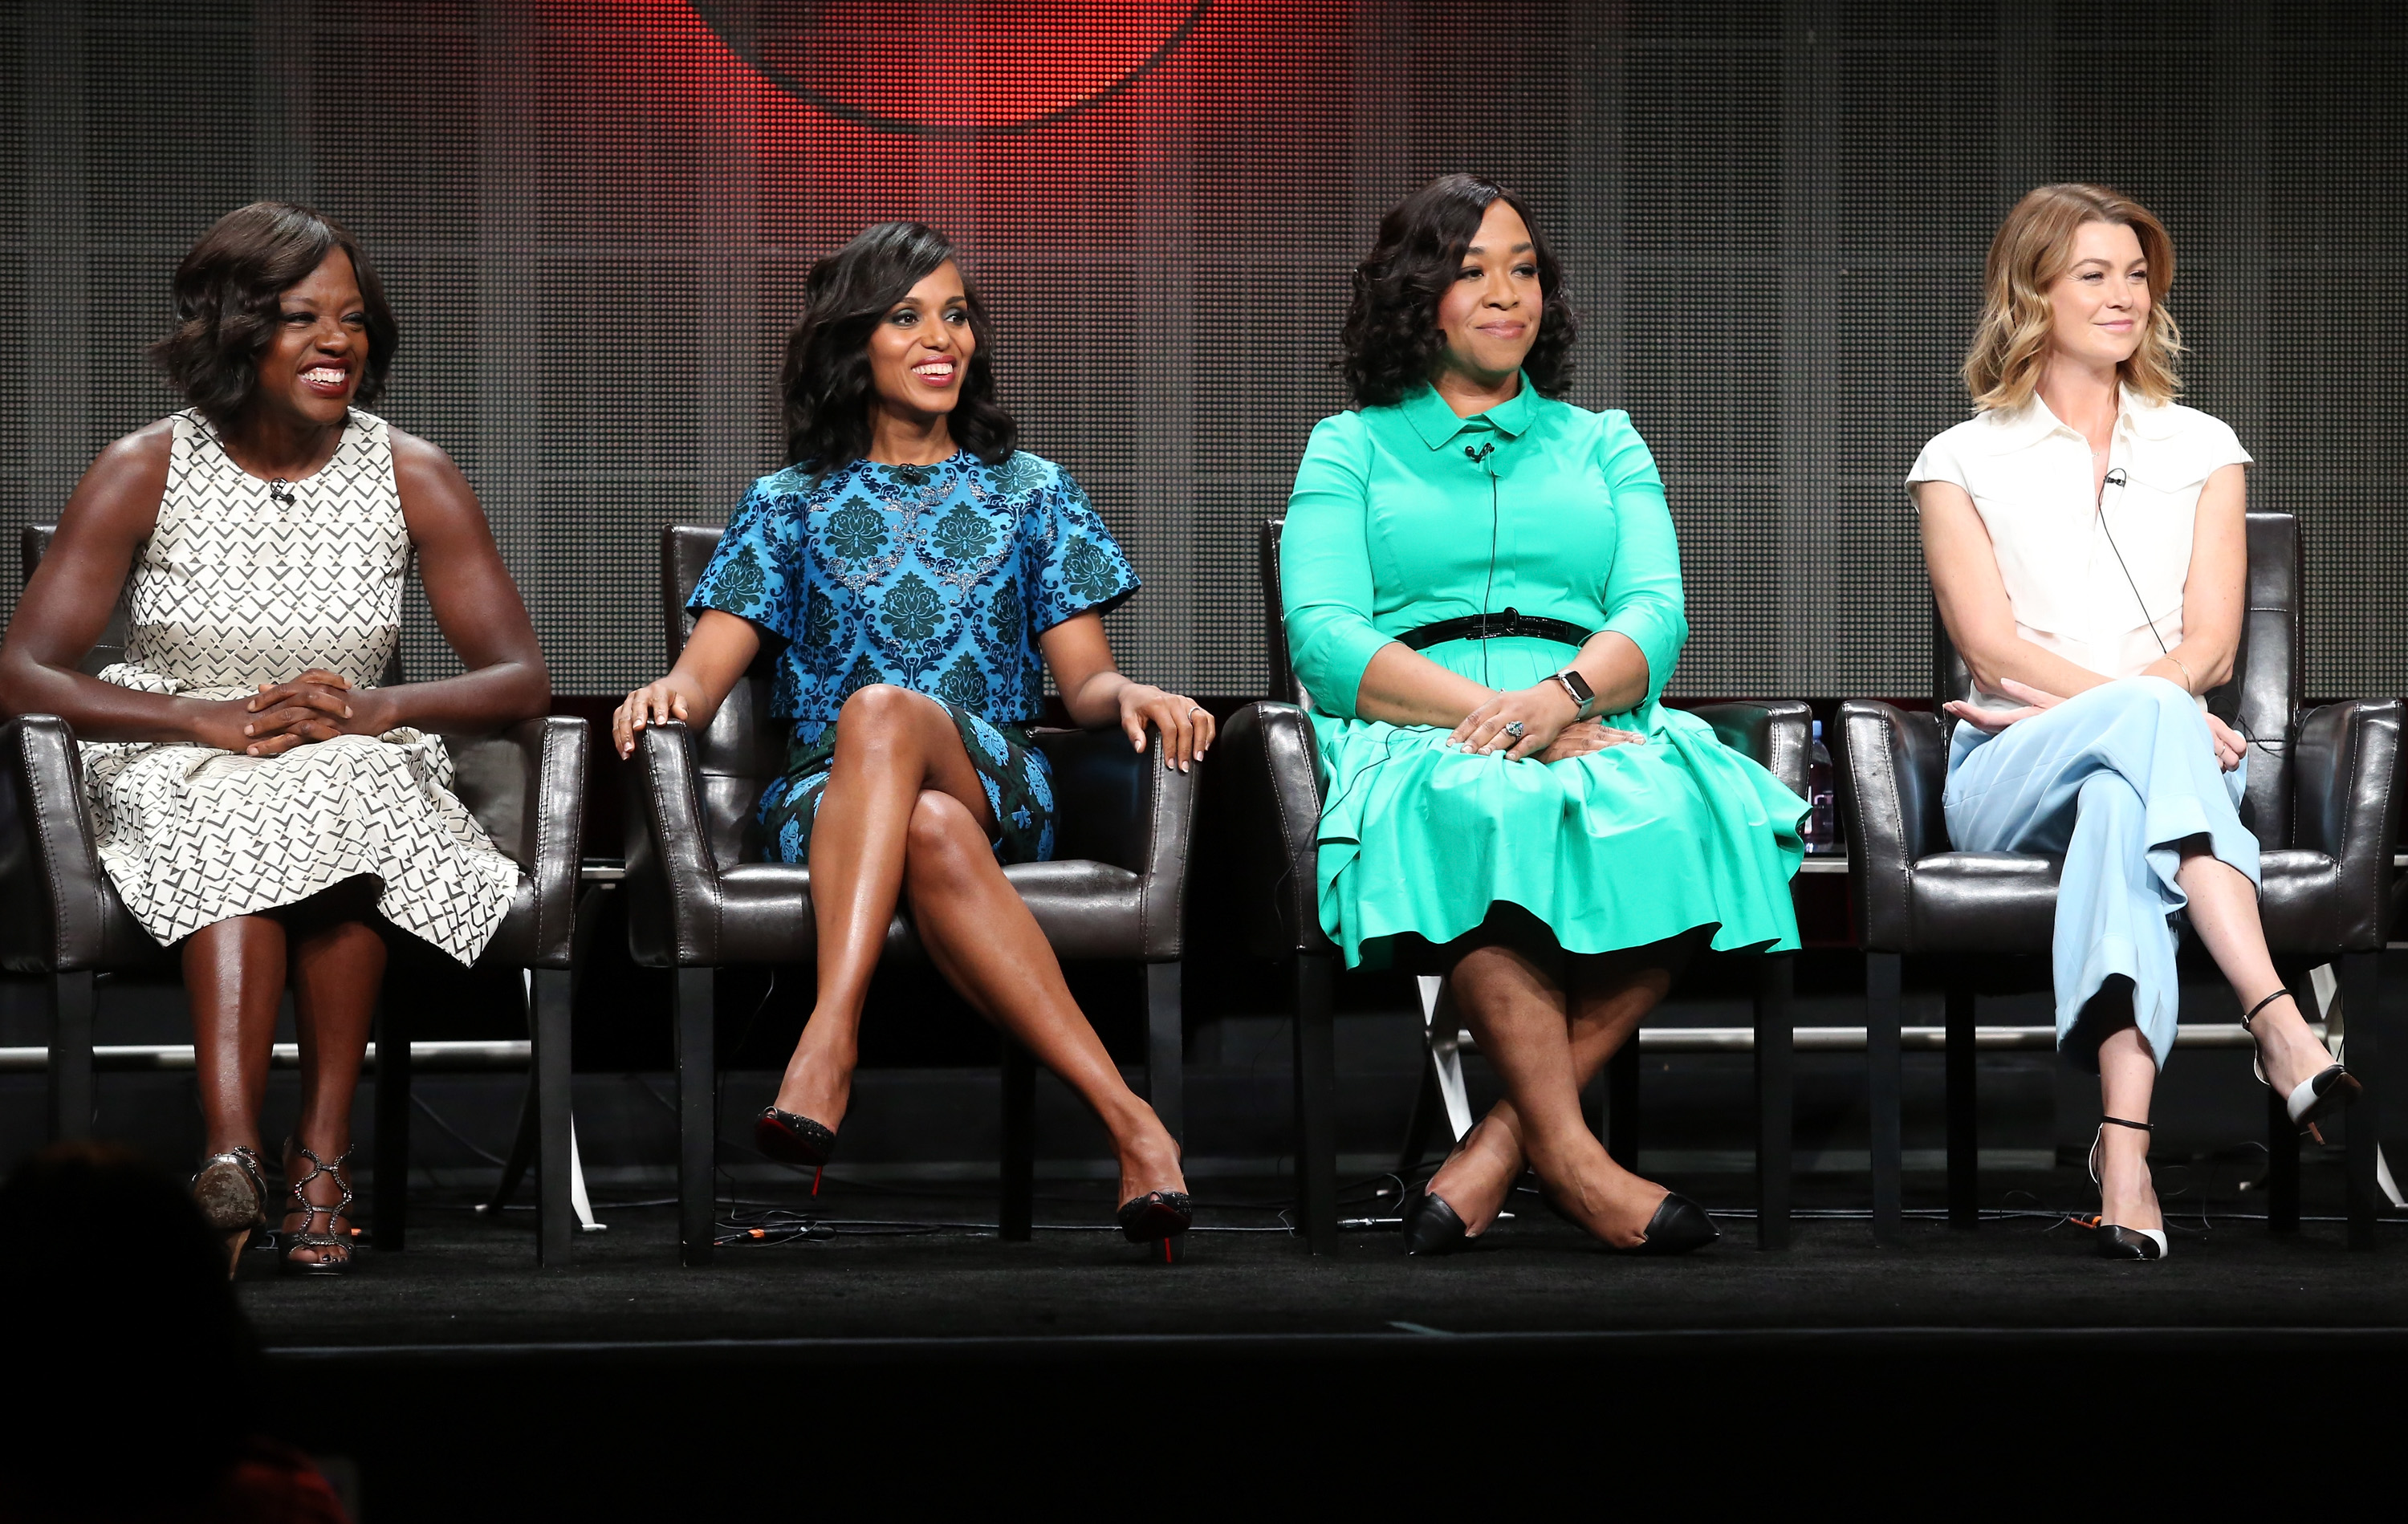 BEVERLY HILLS, CA - AUGUST 04:  (L-R) Actresses Viola Davis, Kerry Washington, executive producer Shonda Rhimes and actress Ellen Pompeo speak onstage during the 'Grey's Anatomy,' 'Scandal,' and 'How To Get Away With Murder' panel discussion at the ABC Entertainment portion of the 2015 Summer TCA Tour at The Beverly Hilton Hotel on August 4, 2015 in Beverly Hills, California.  (Photo by Frederick M. Brown/Getty Images)